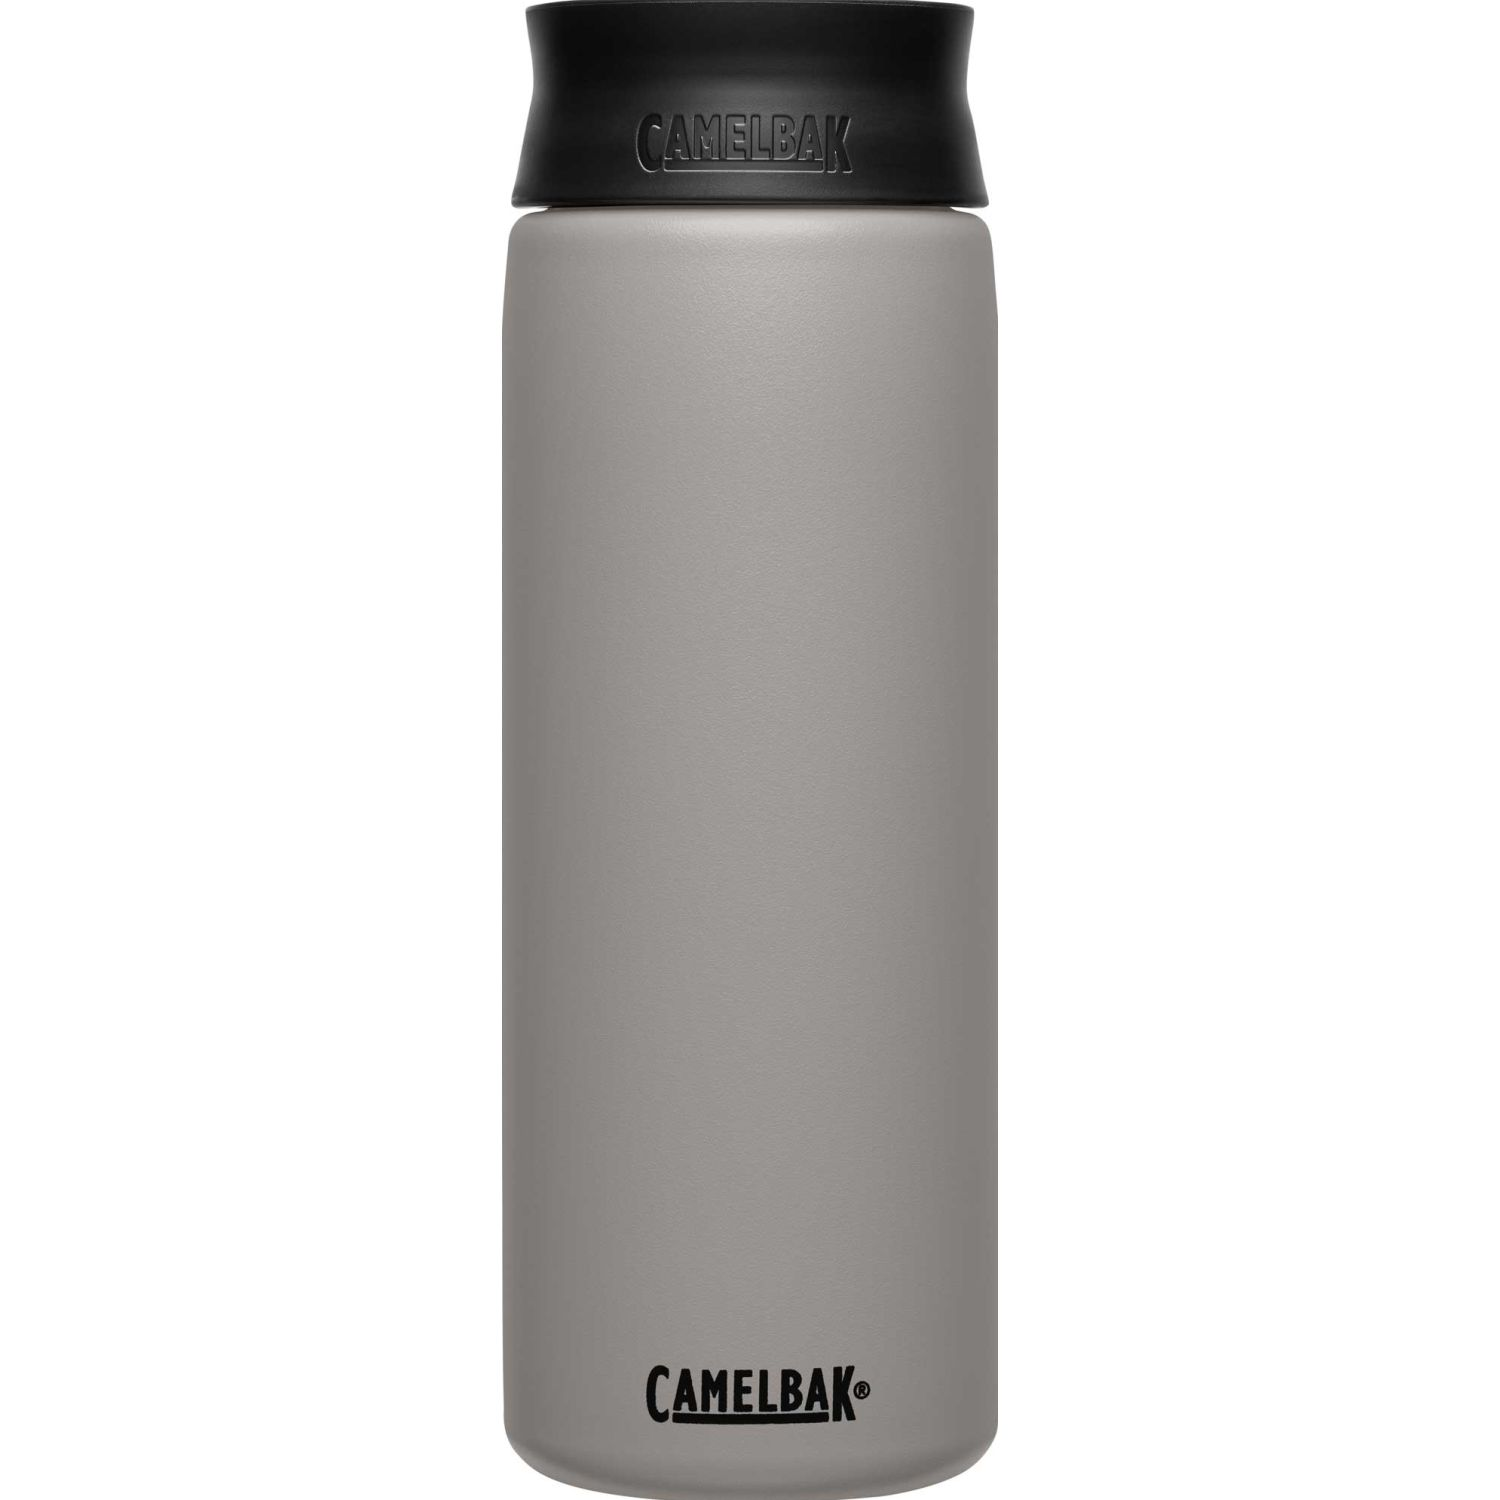 CAMELBAK HOT CAP VACUUM STAINLESS 20OZ Plomo Botellas de Agua